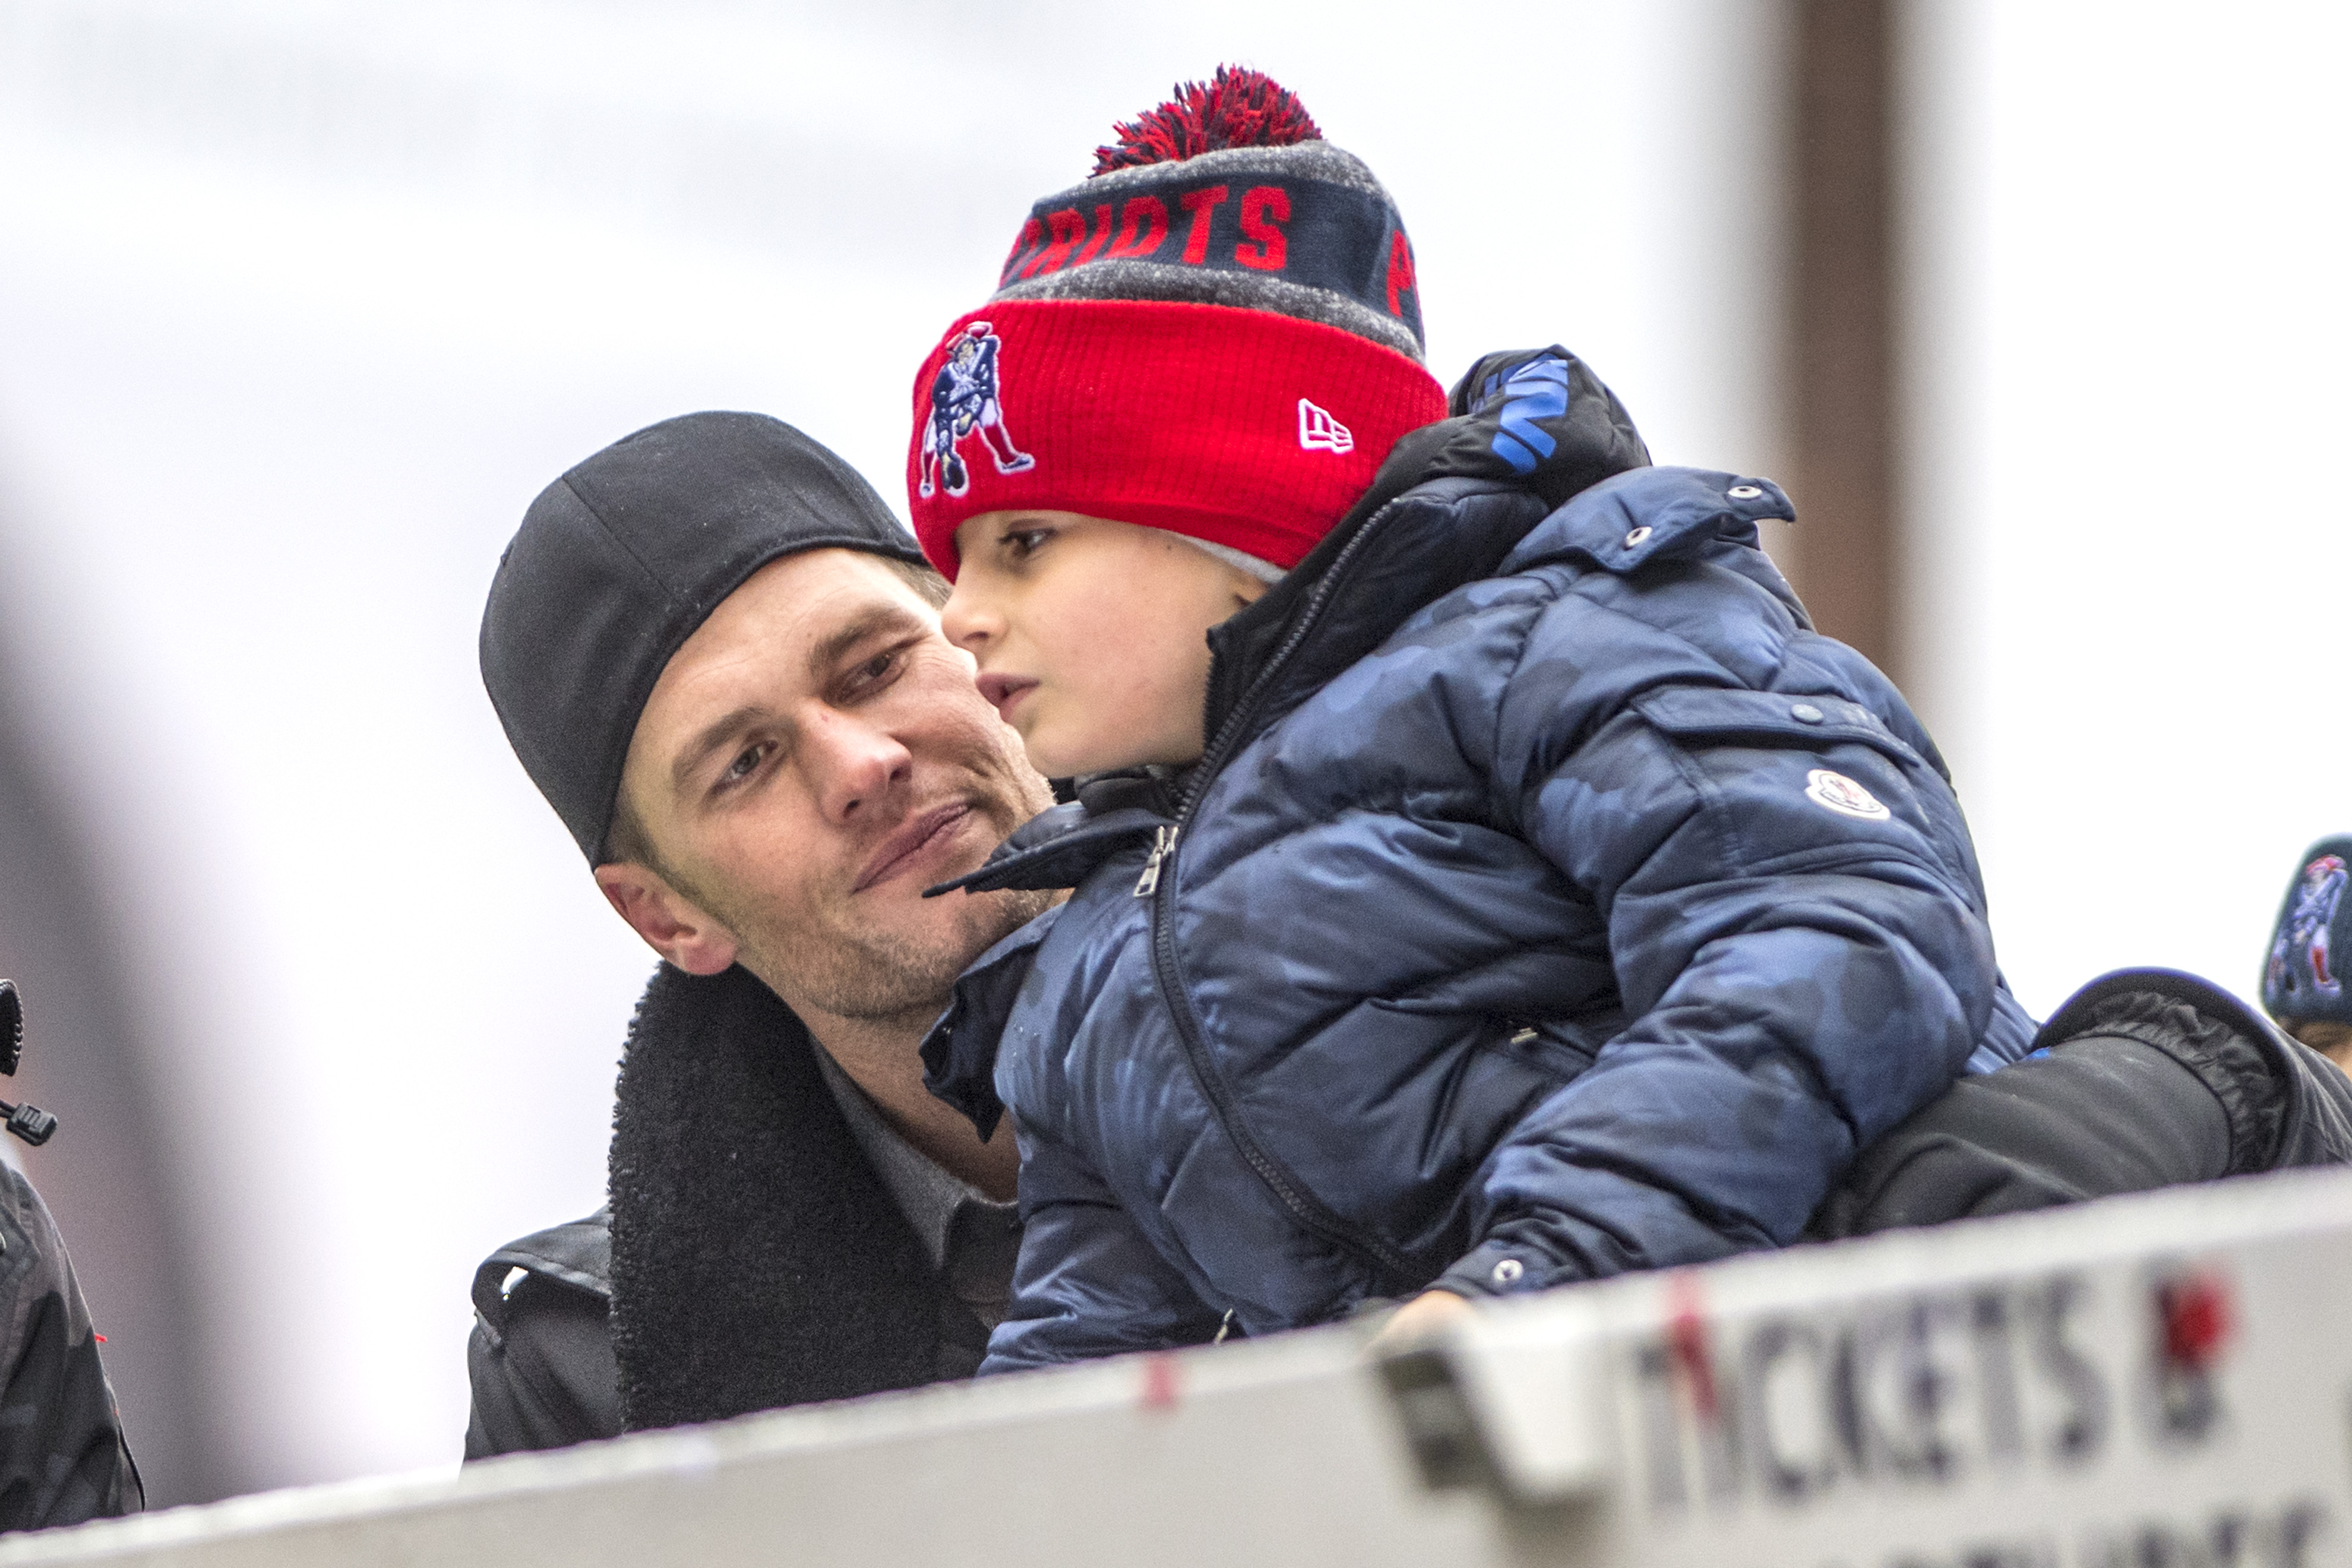 BOSTON, MA - FEBRUARY 07: Tom Brady of the New England Patriots celebrates with his son Benjamin during the Super Bowl victory parade on February 7, 2017 in Boston, Massachusetts. The Patriots defeated the Atlanta Falcons 34-28 in overtime in Super Bowl 51. (Photo by Billie Weiss/Getty Images)